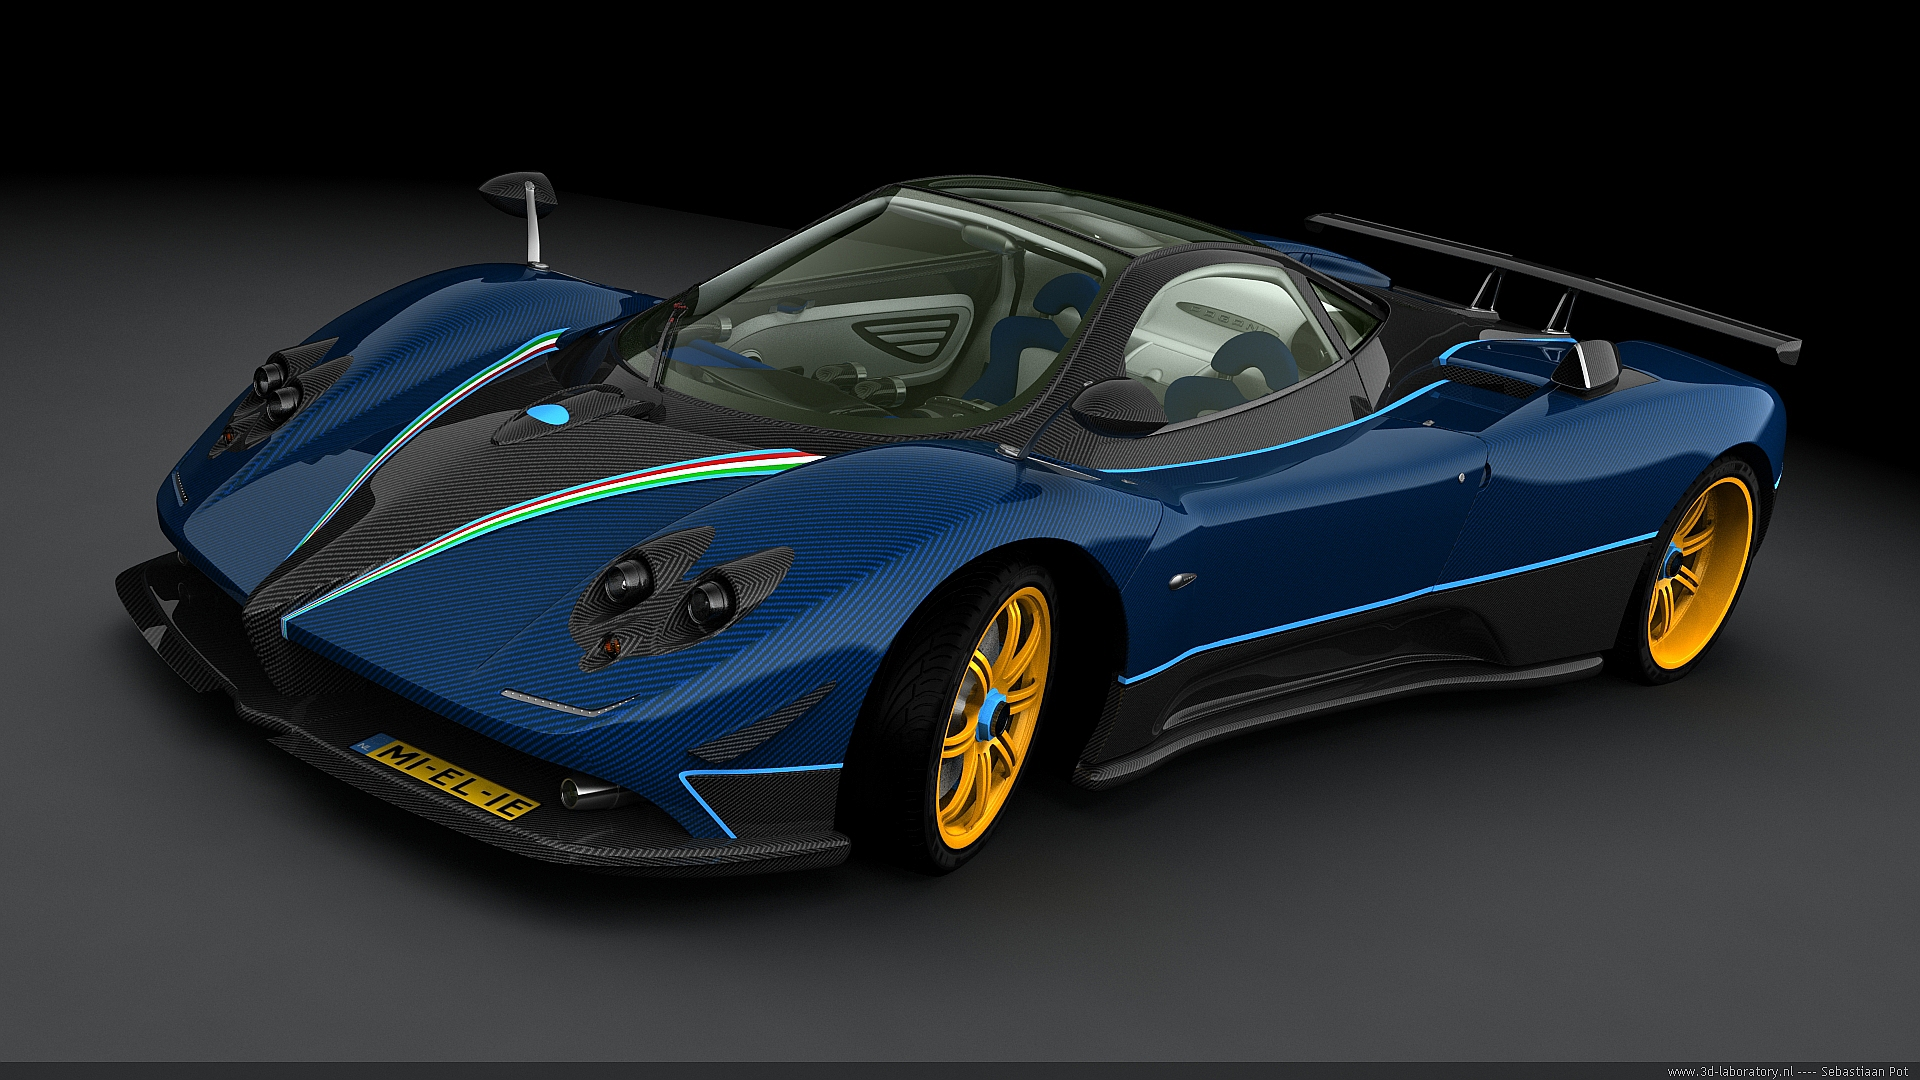 Pagani Zonda   28 Incredible Desktop Background Wallpapers Collection 1920x1080